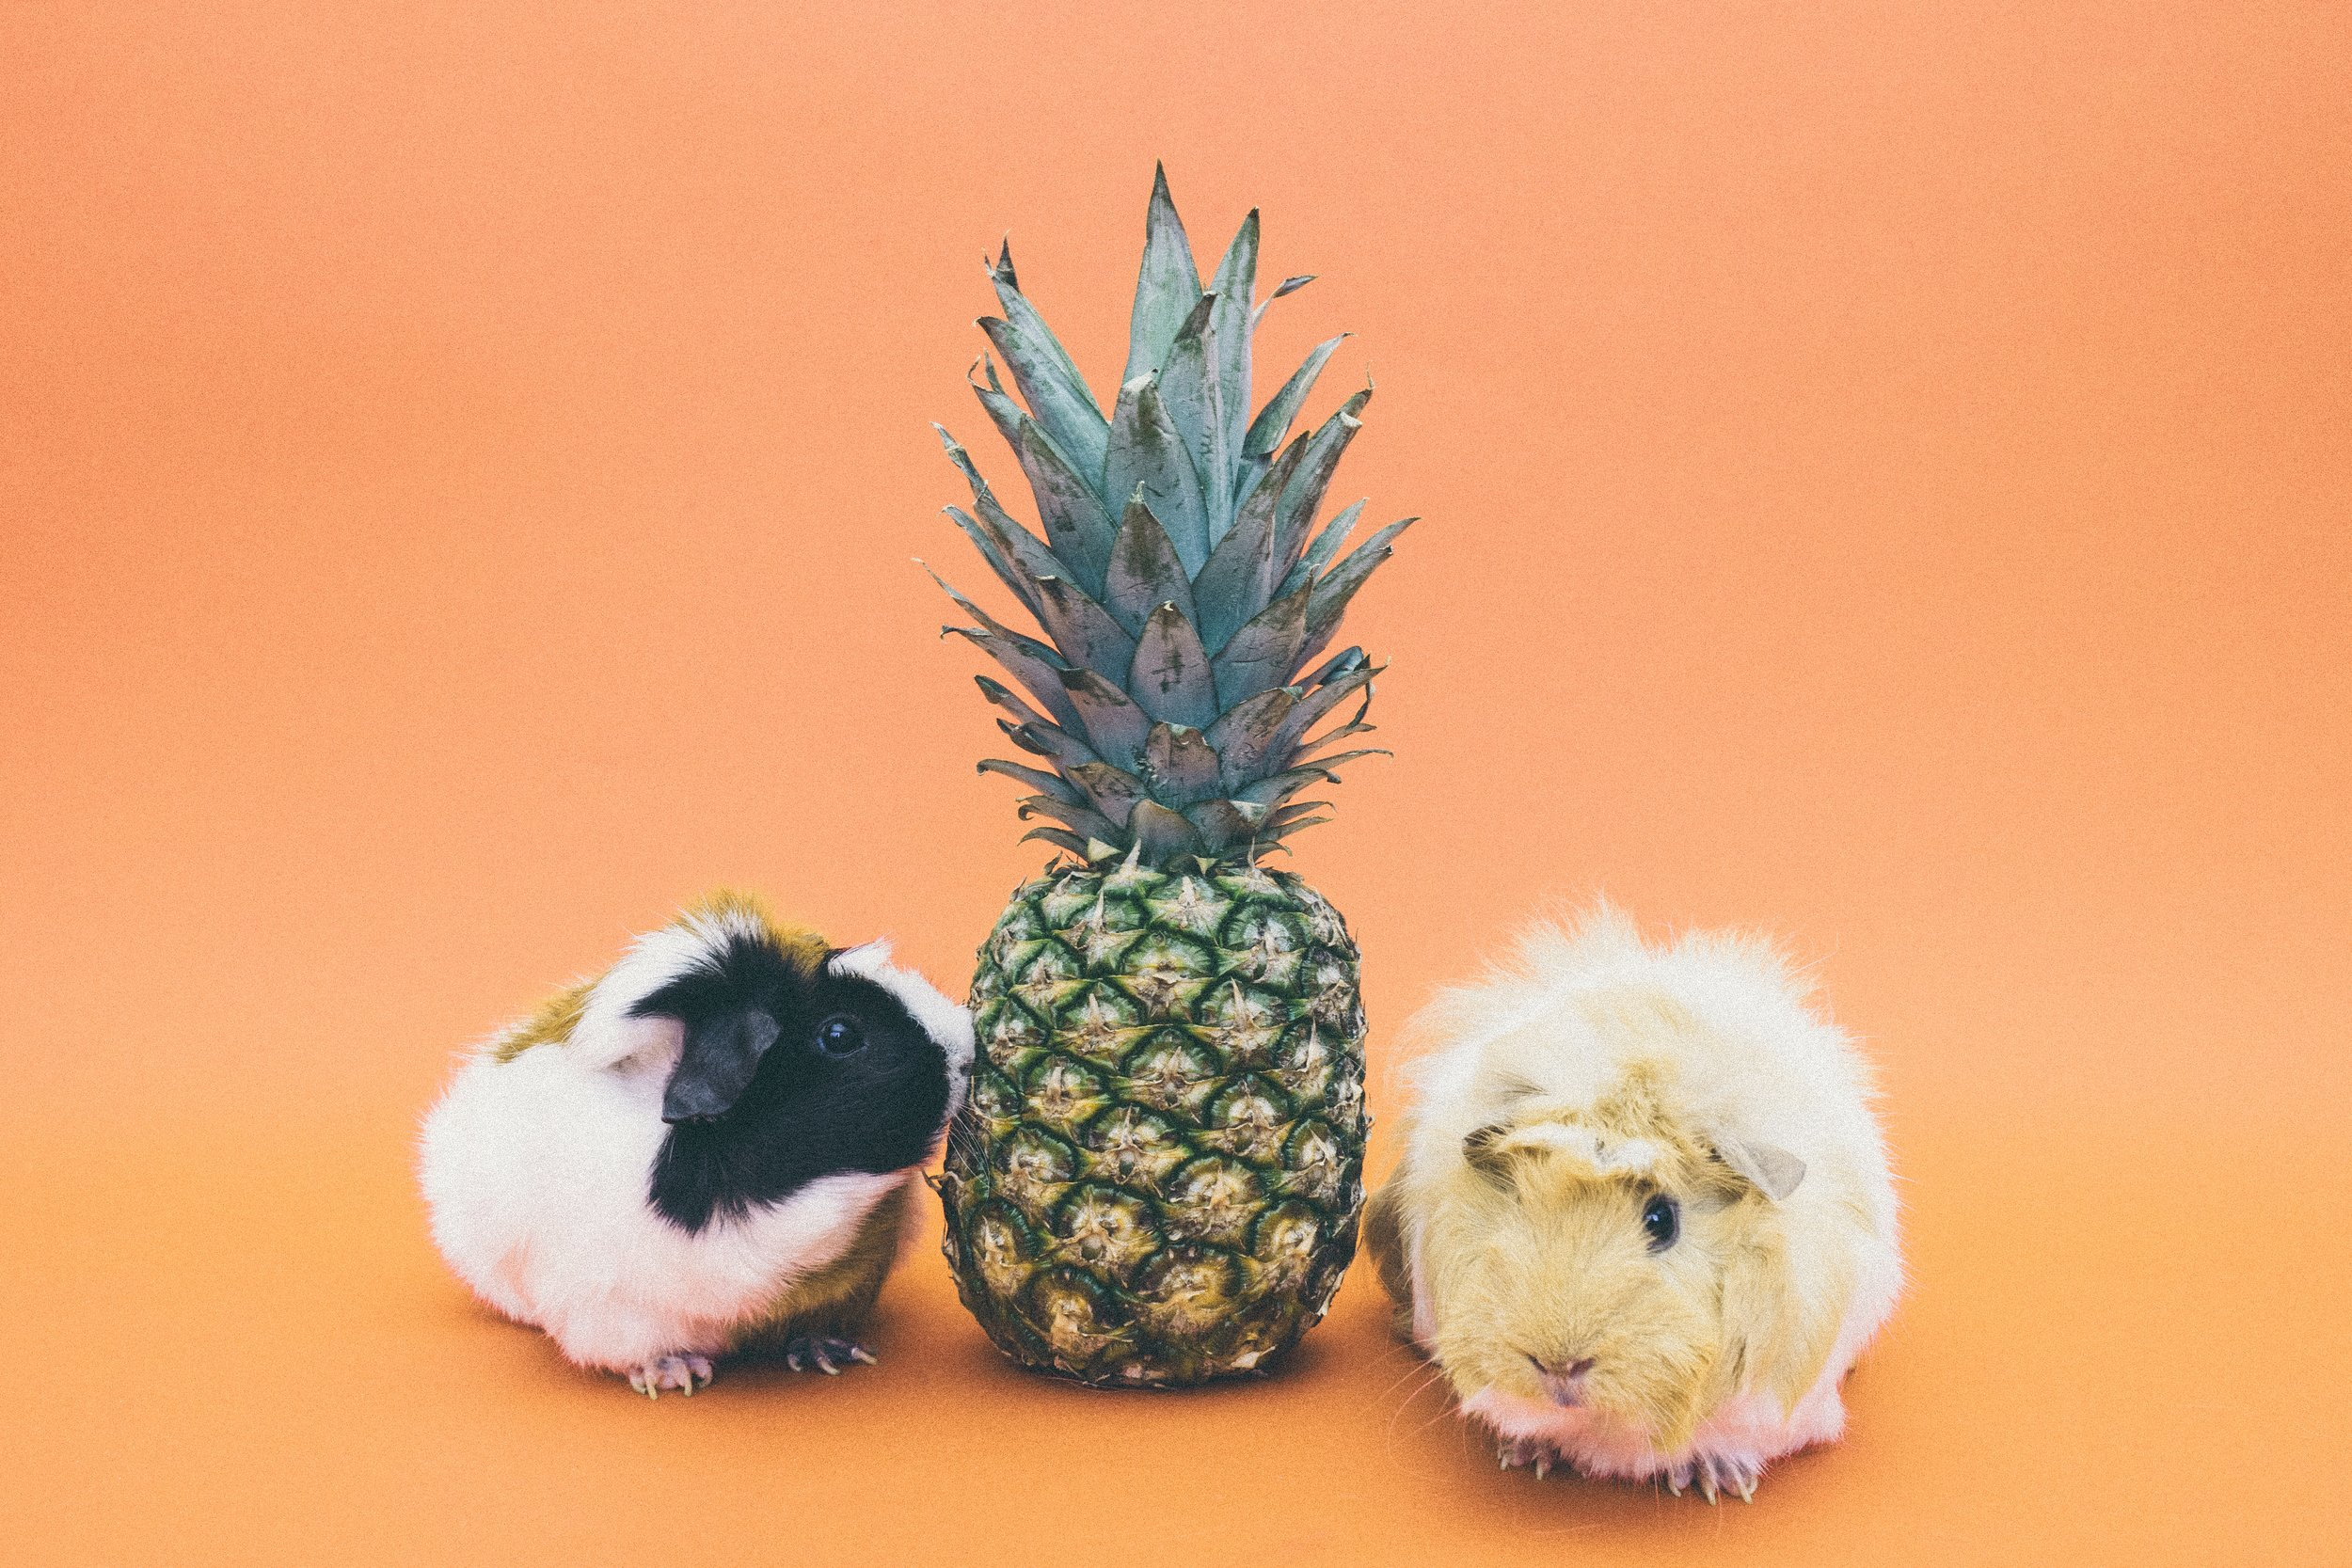 pineapple-supply-co-79711-unsplash.jpg